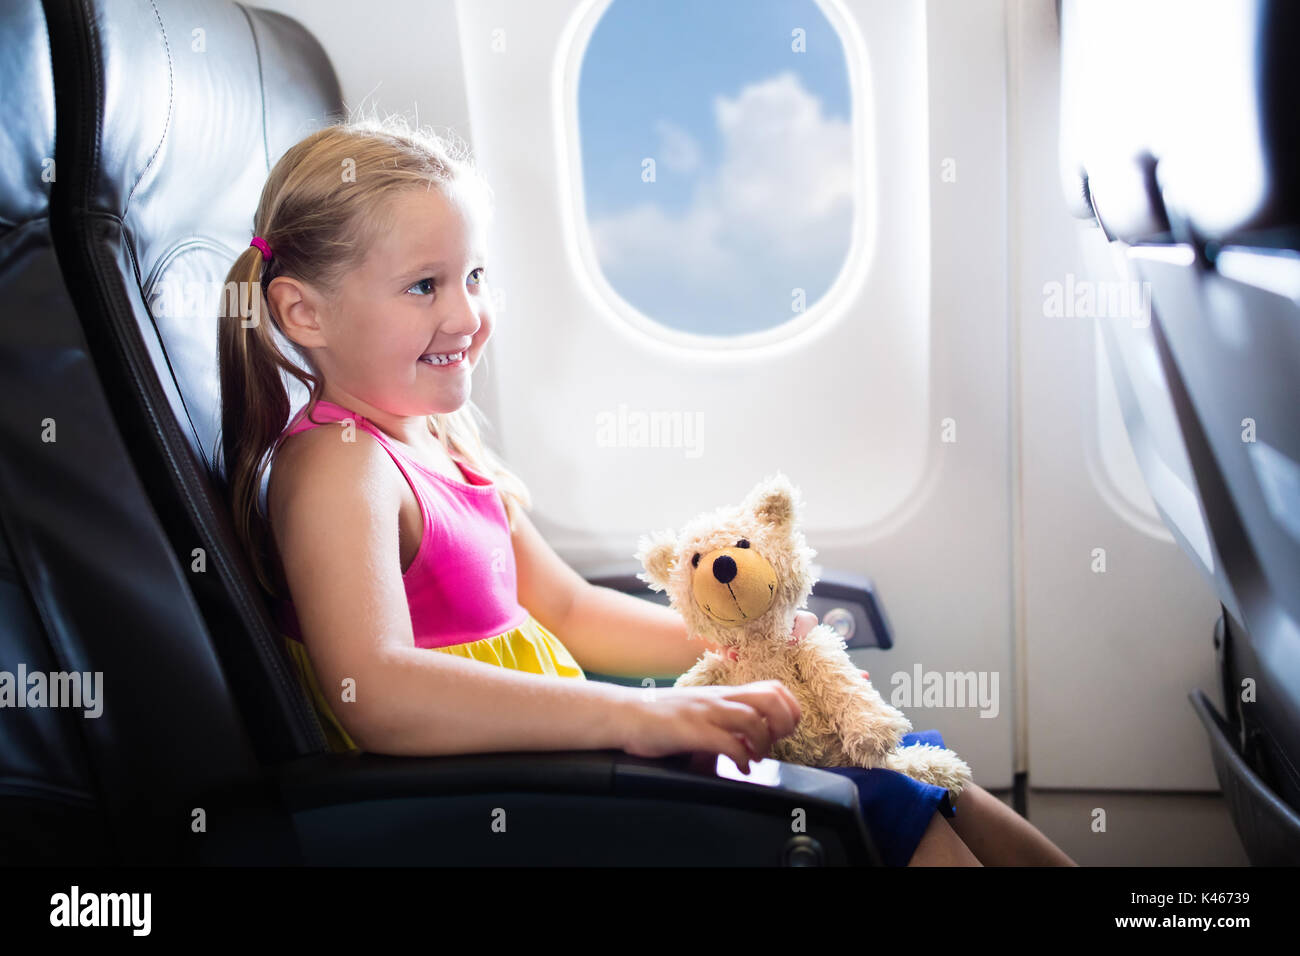 Child In Airplane Kid In Air Plane Sitting In Window Seat